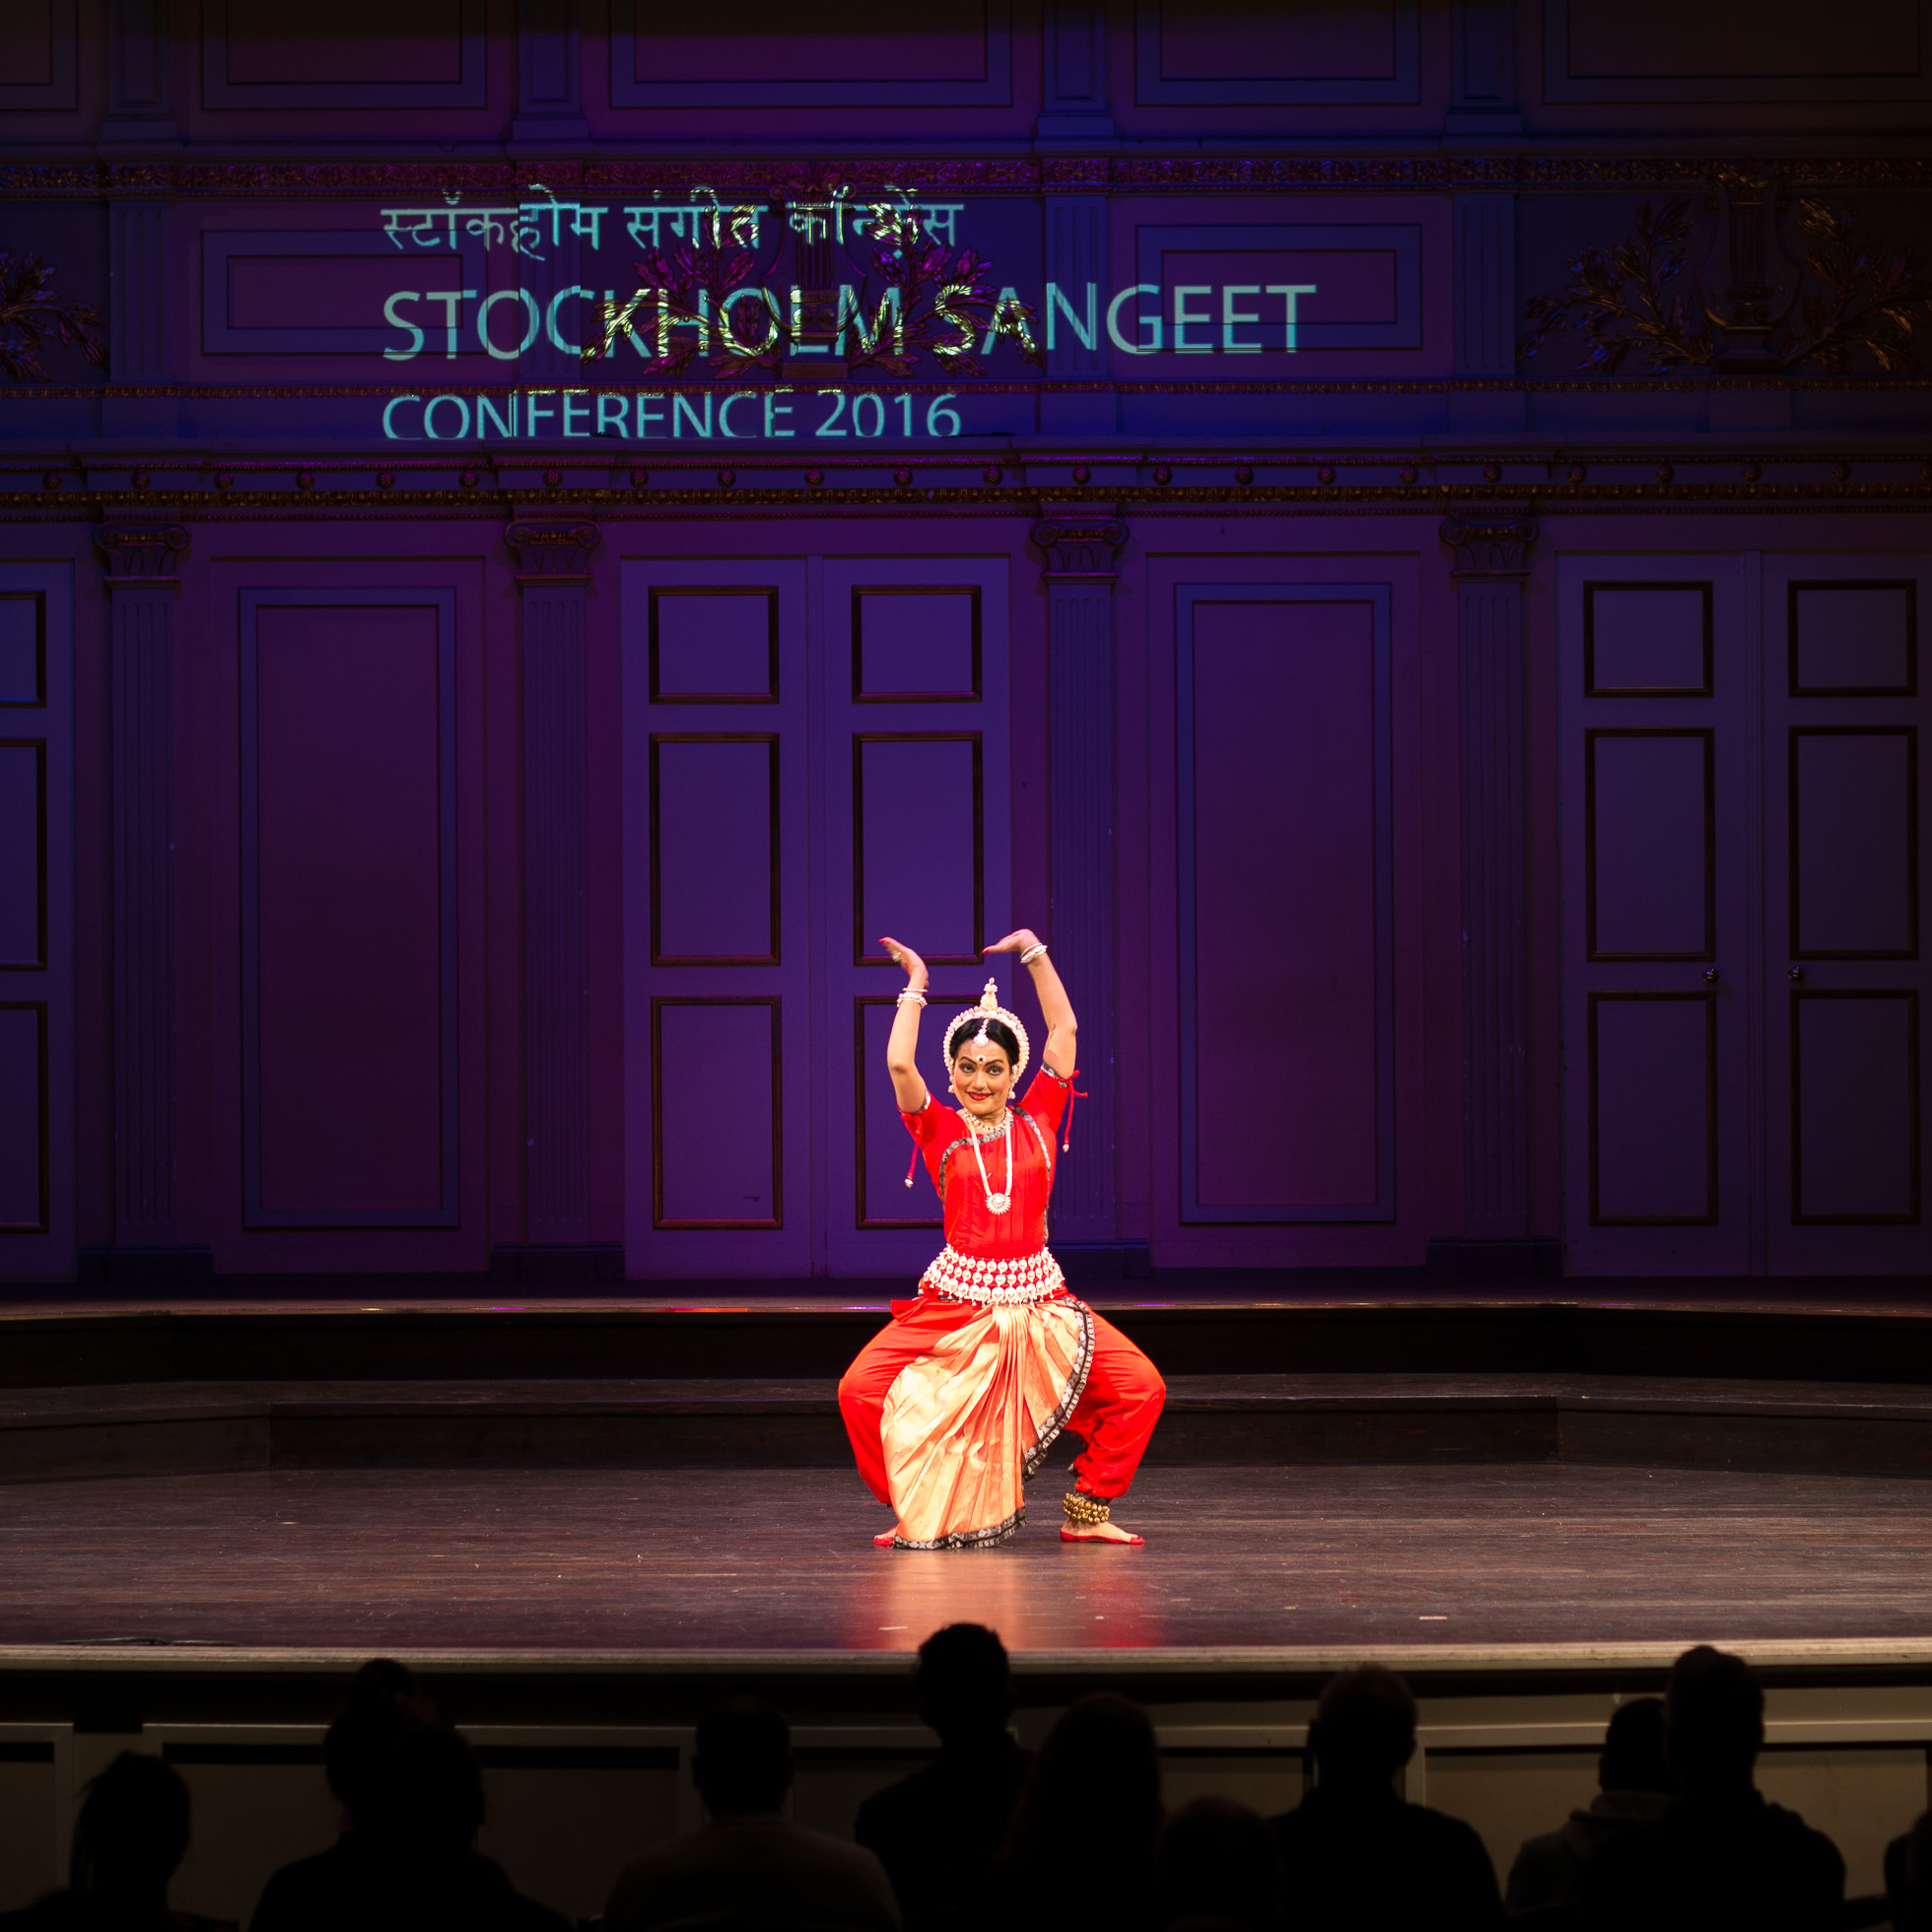 2016-10-16-stockholm-sangeet-conference-2016_2016-10-16_max-dahlstrand_0257